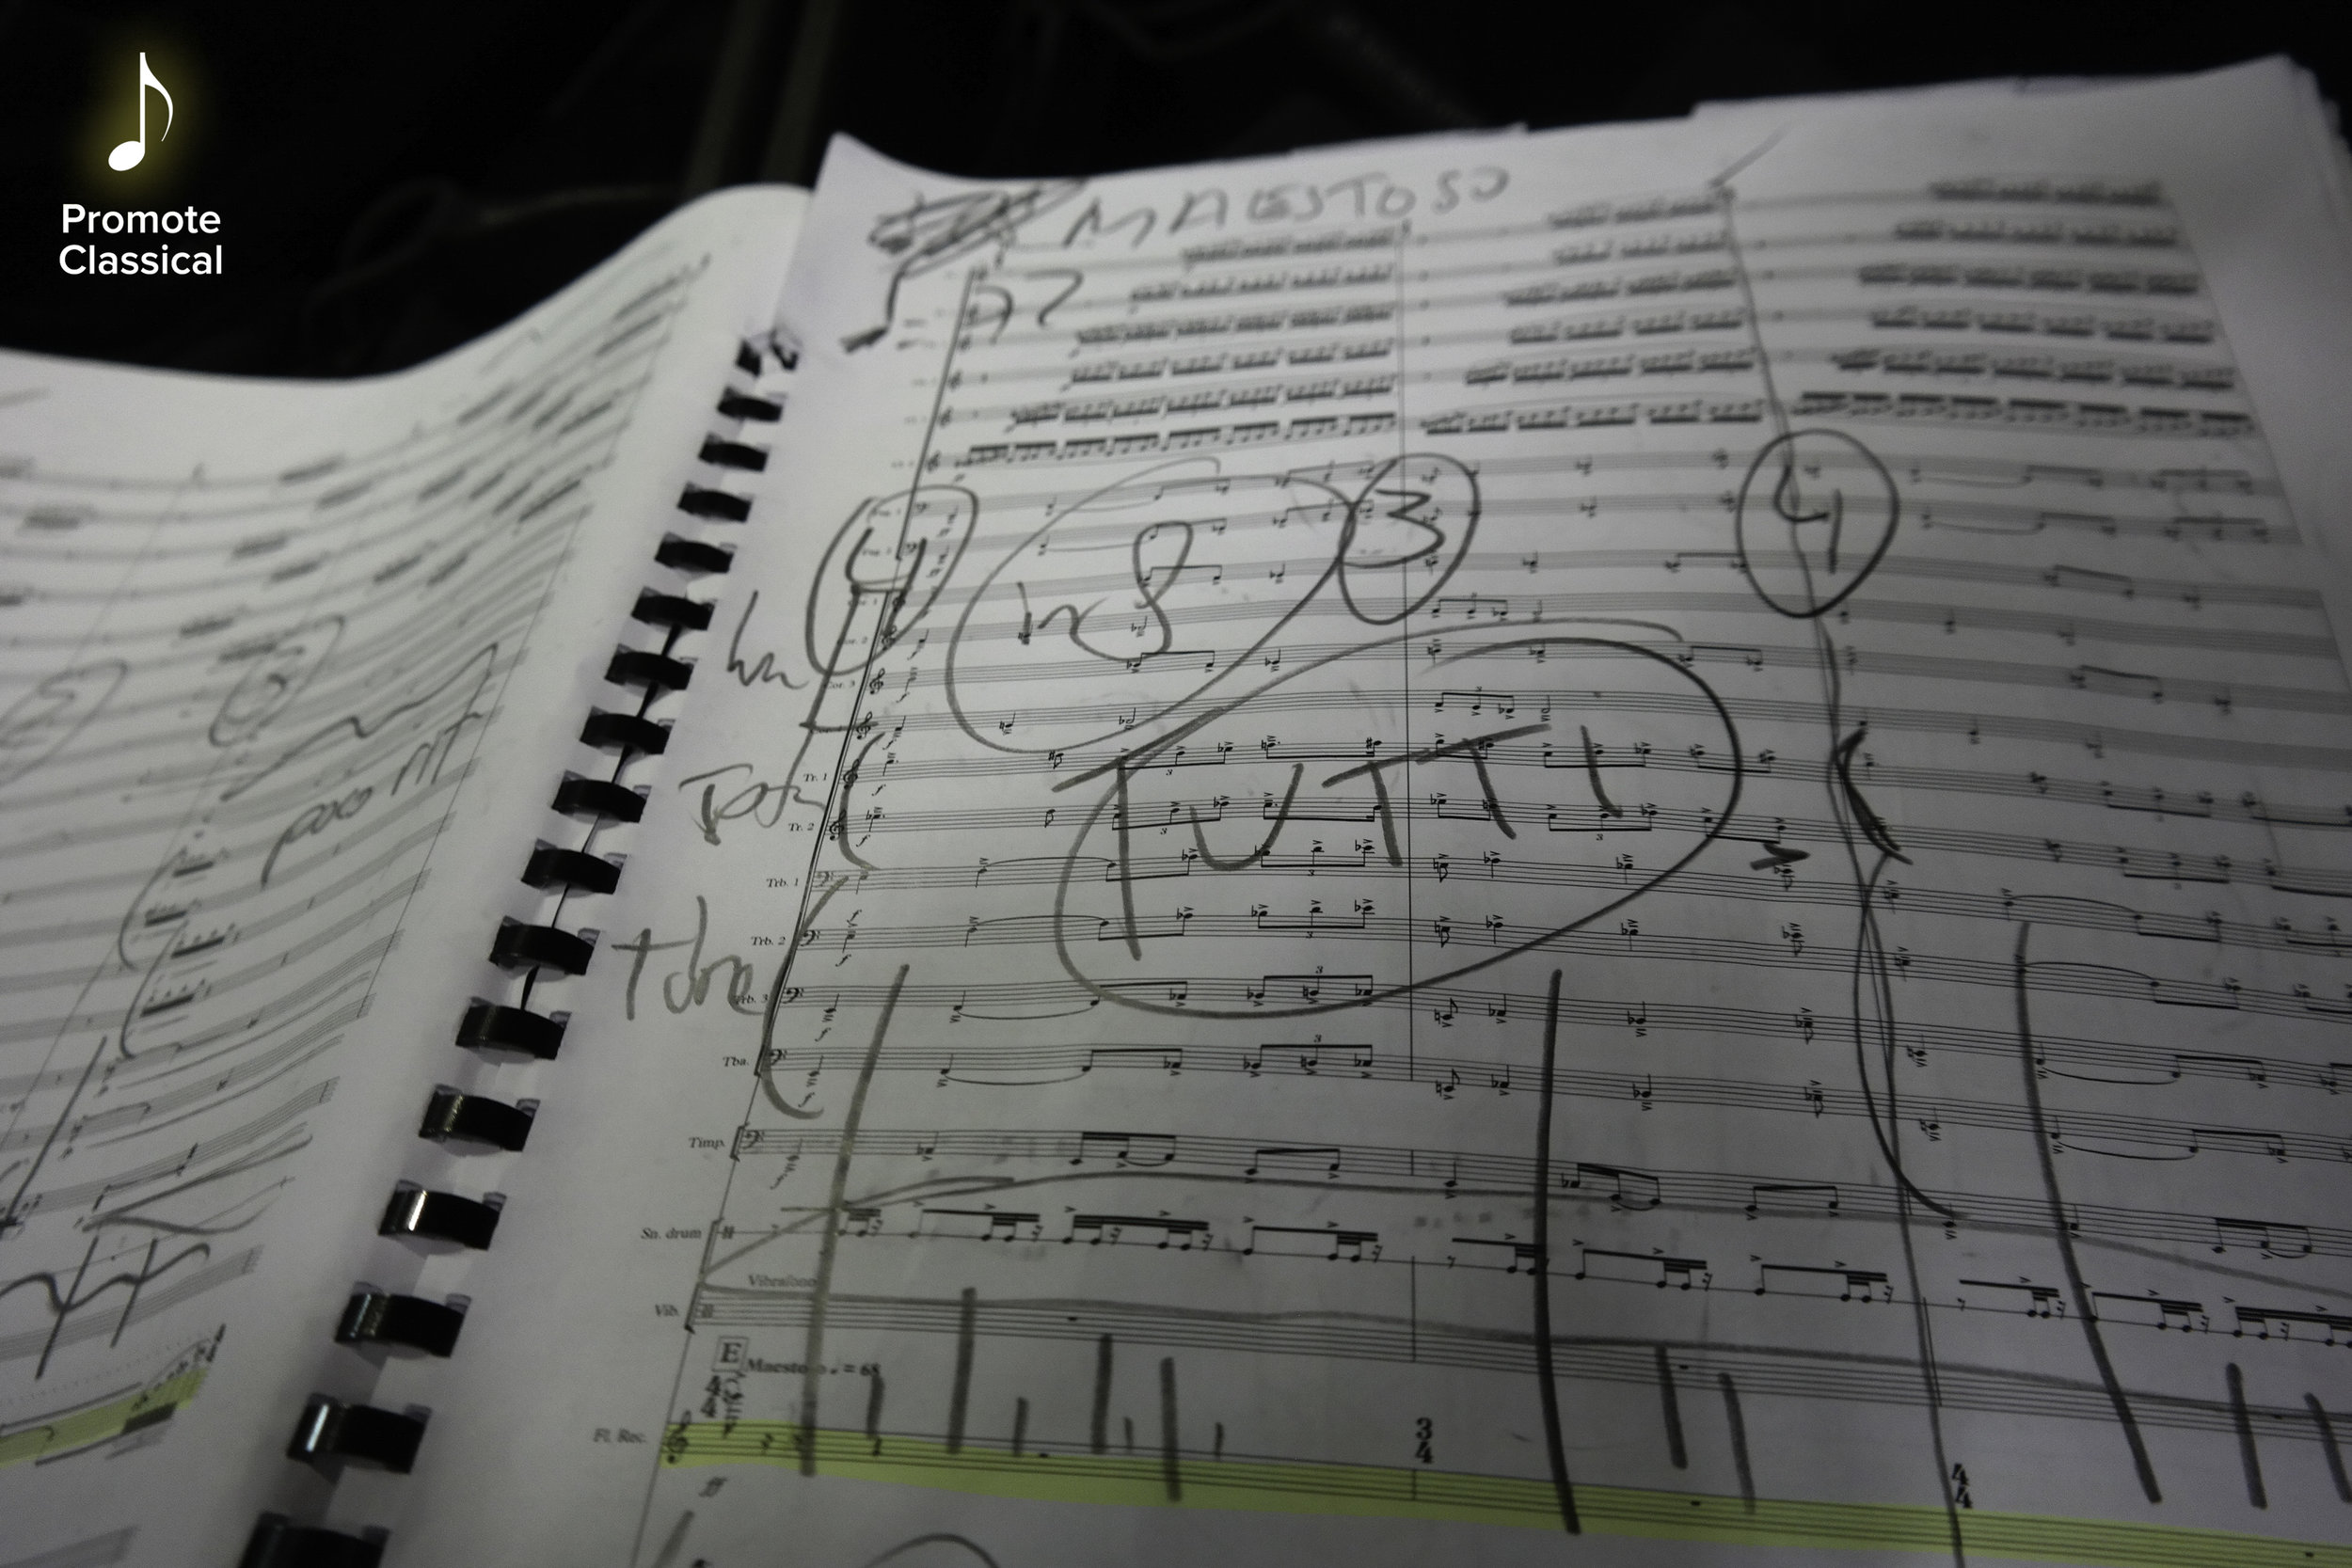 A page from the conductor's score of Vito's Recorder Concerto, annotated by Gävle Symfoniorkester's artistic director and conductor Jaime Martin.